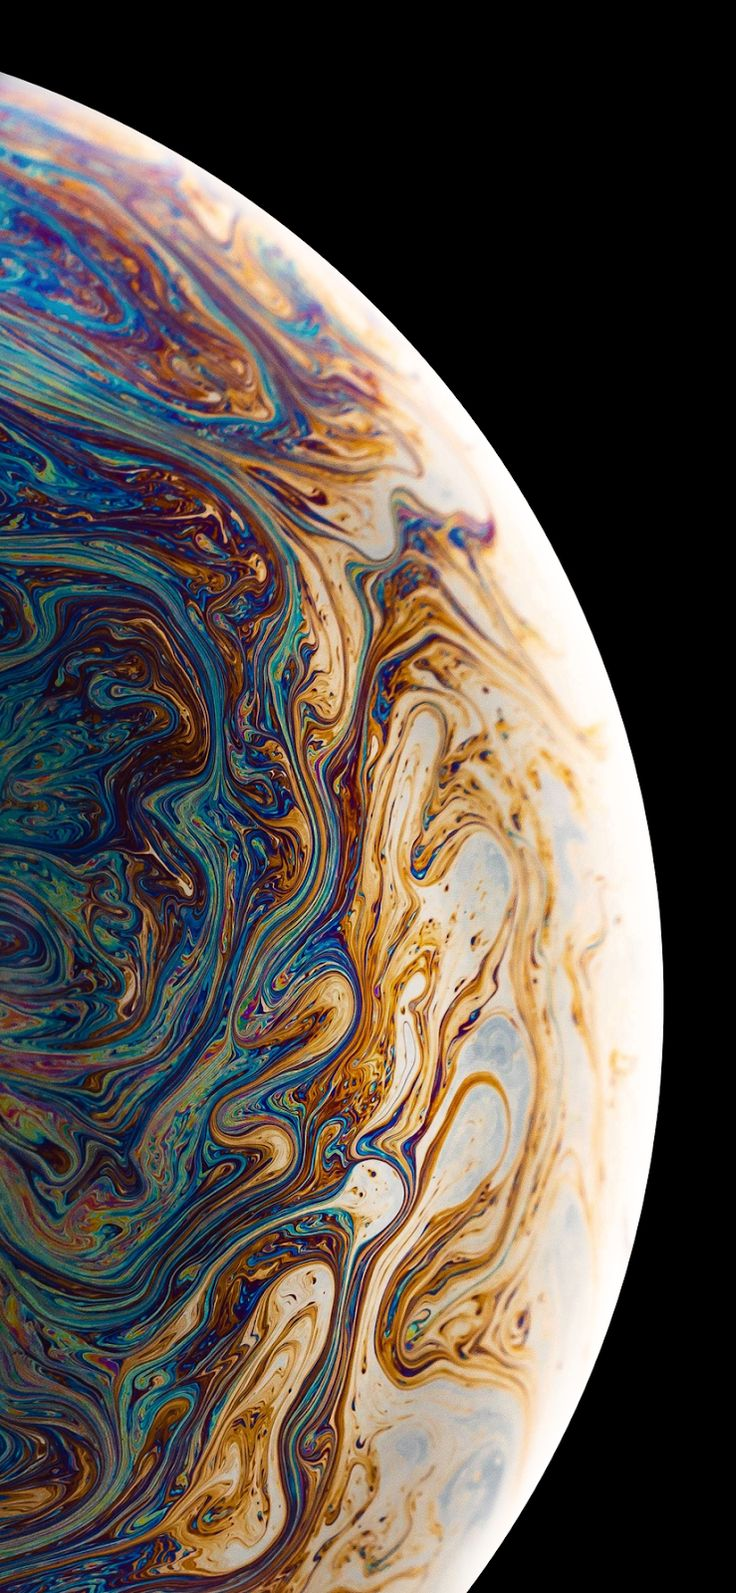 iphone 11 wallpaper hd 4k download in 2020 wallpaper on live wall id=85149